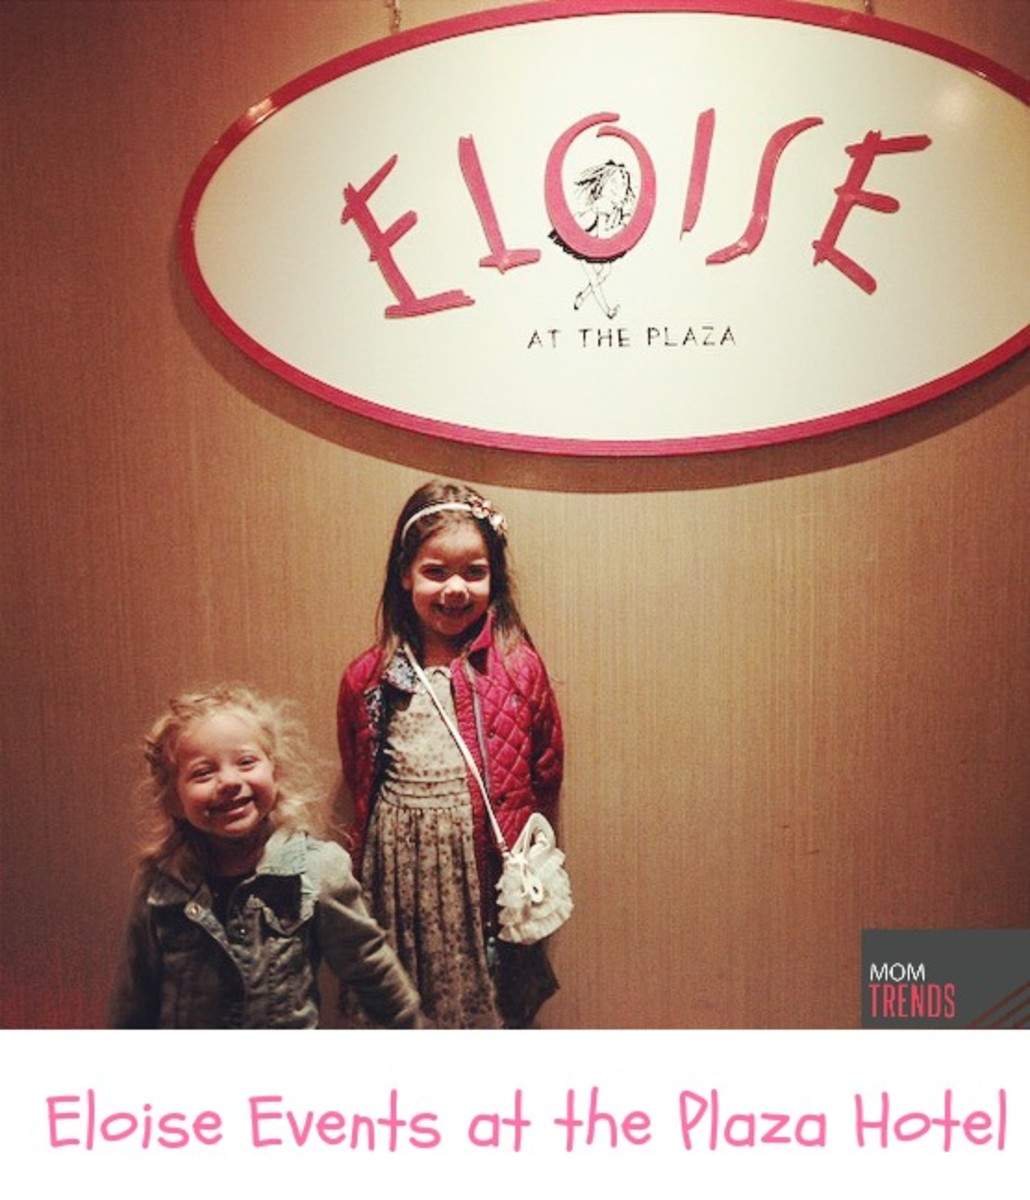 Eloise Fall Events at the Plaza Hotel